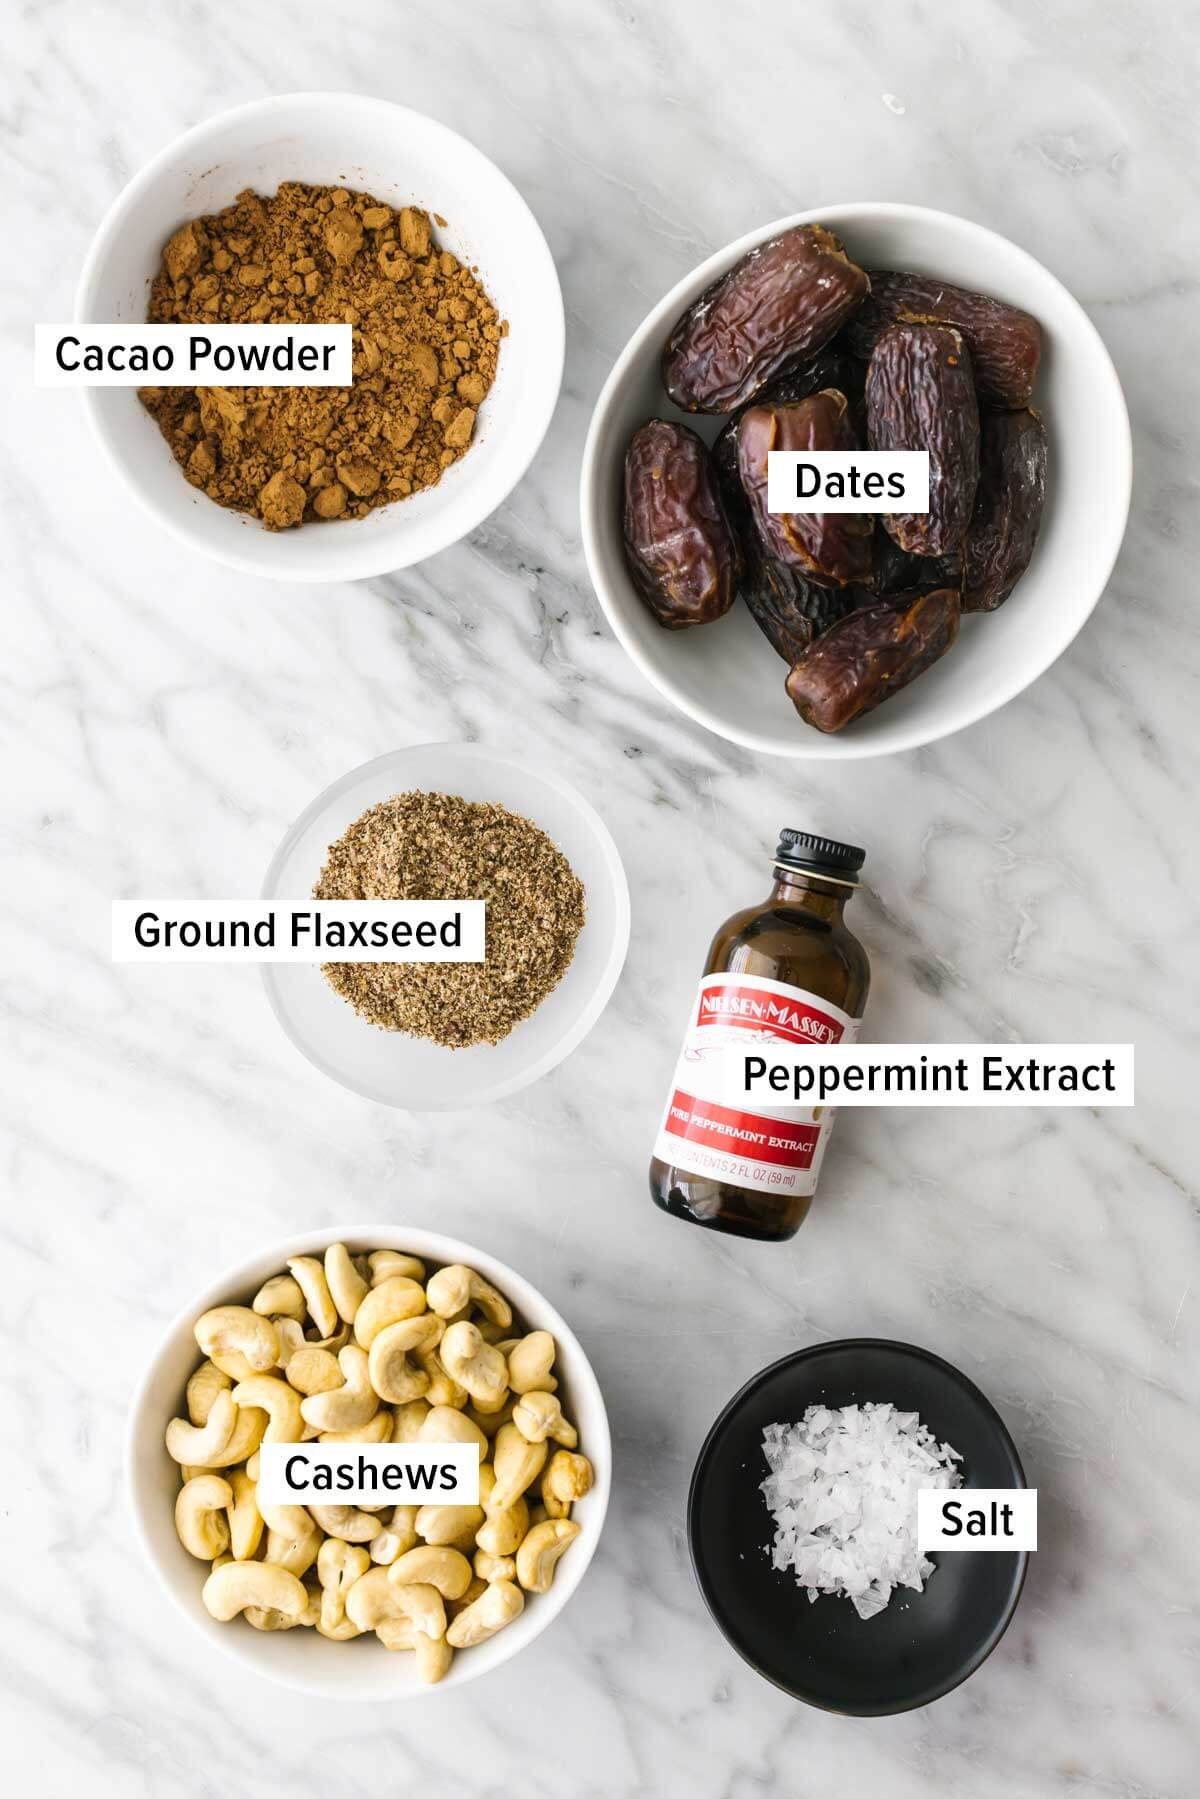 Ingredients for mint chocolate energy balls on a table.